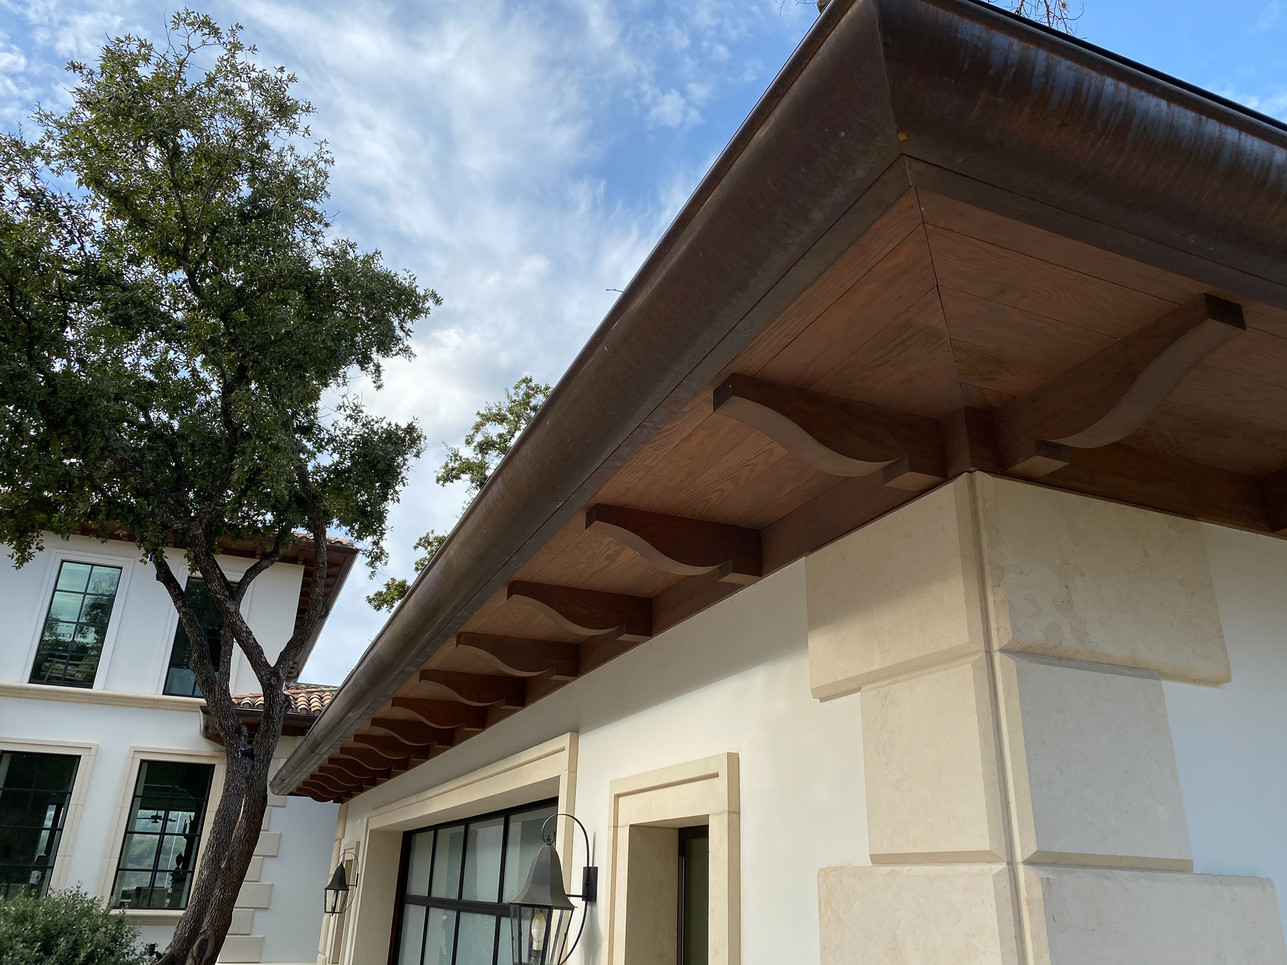 Quarter-Round Copper Gutters with Round